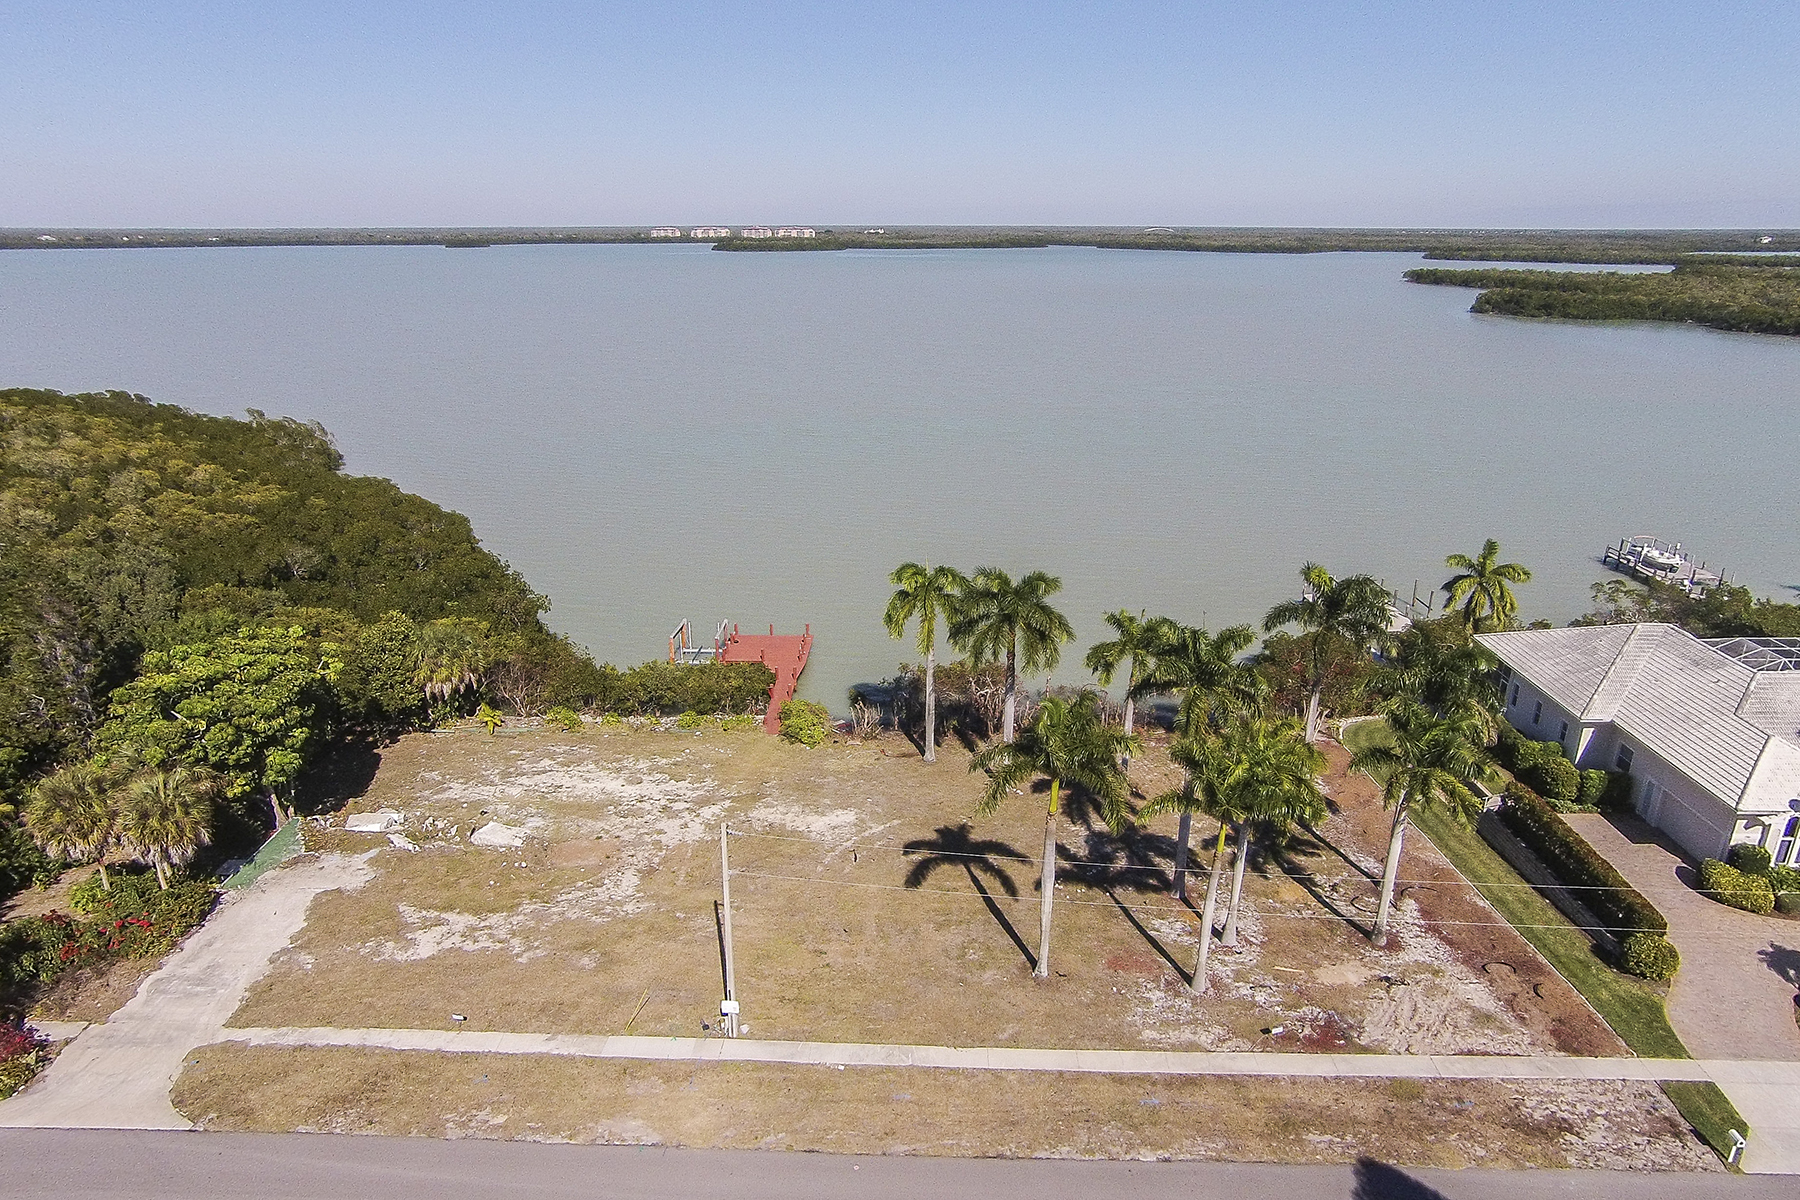 Land for Sale at MARCO ISLAND - CAXAMBAS DRIVE 781 Caxambas Dr Marco Island, Florida 34145 United States